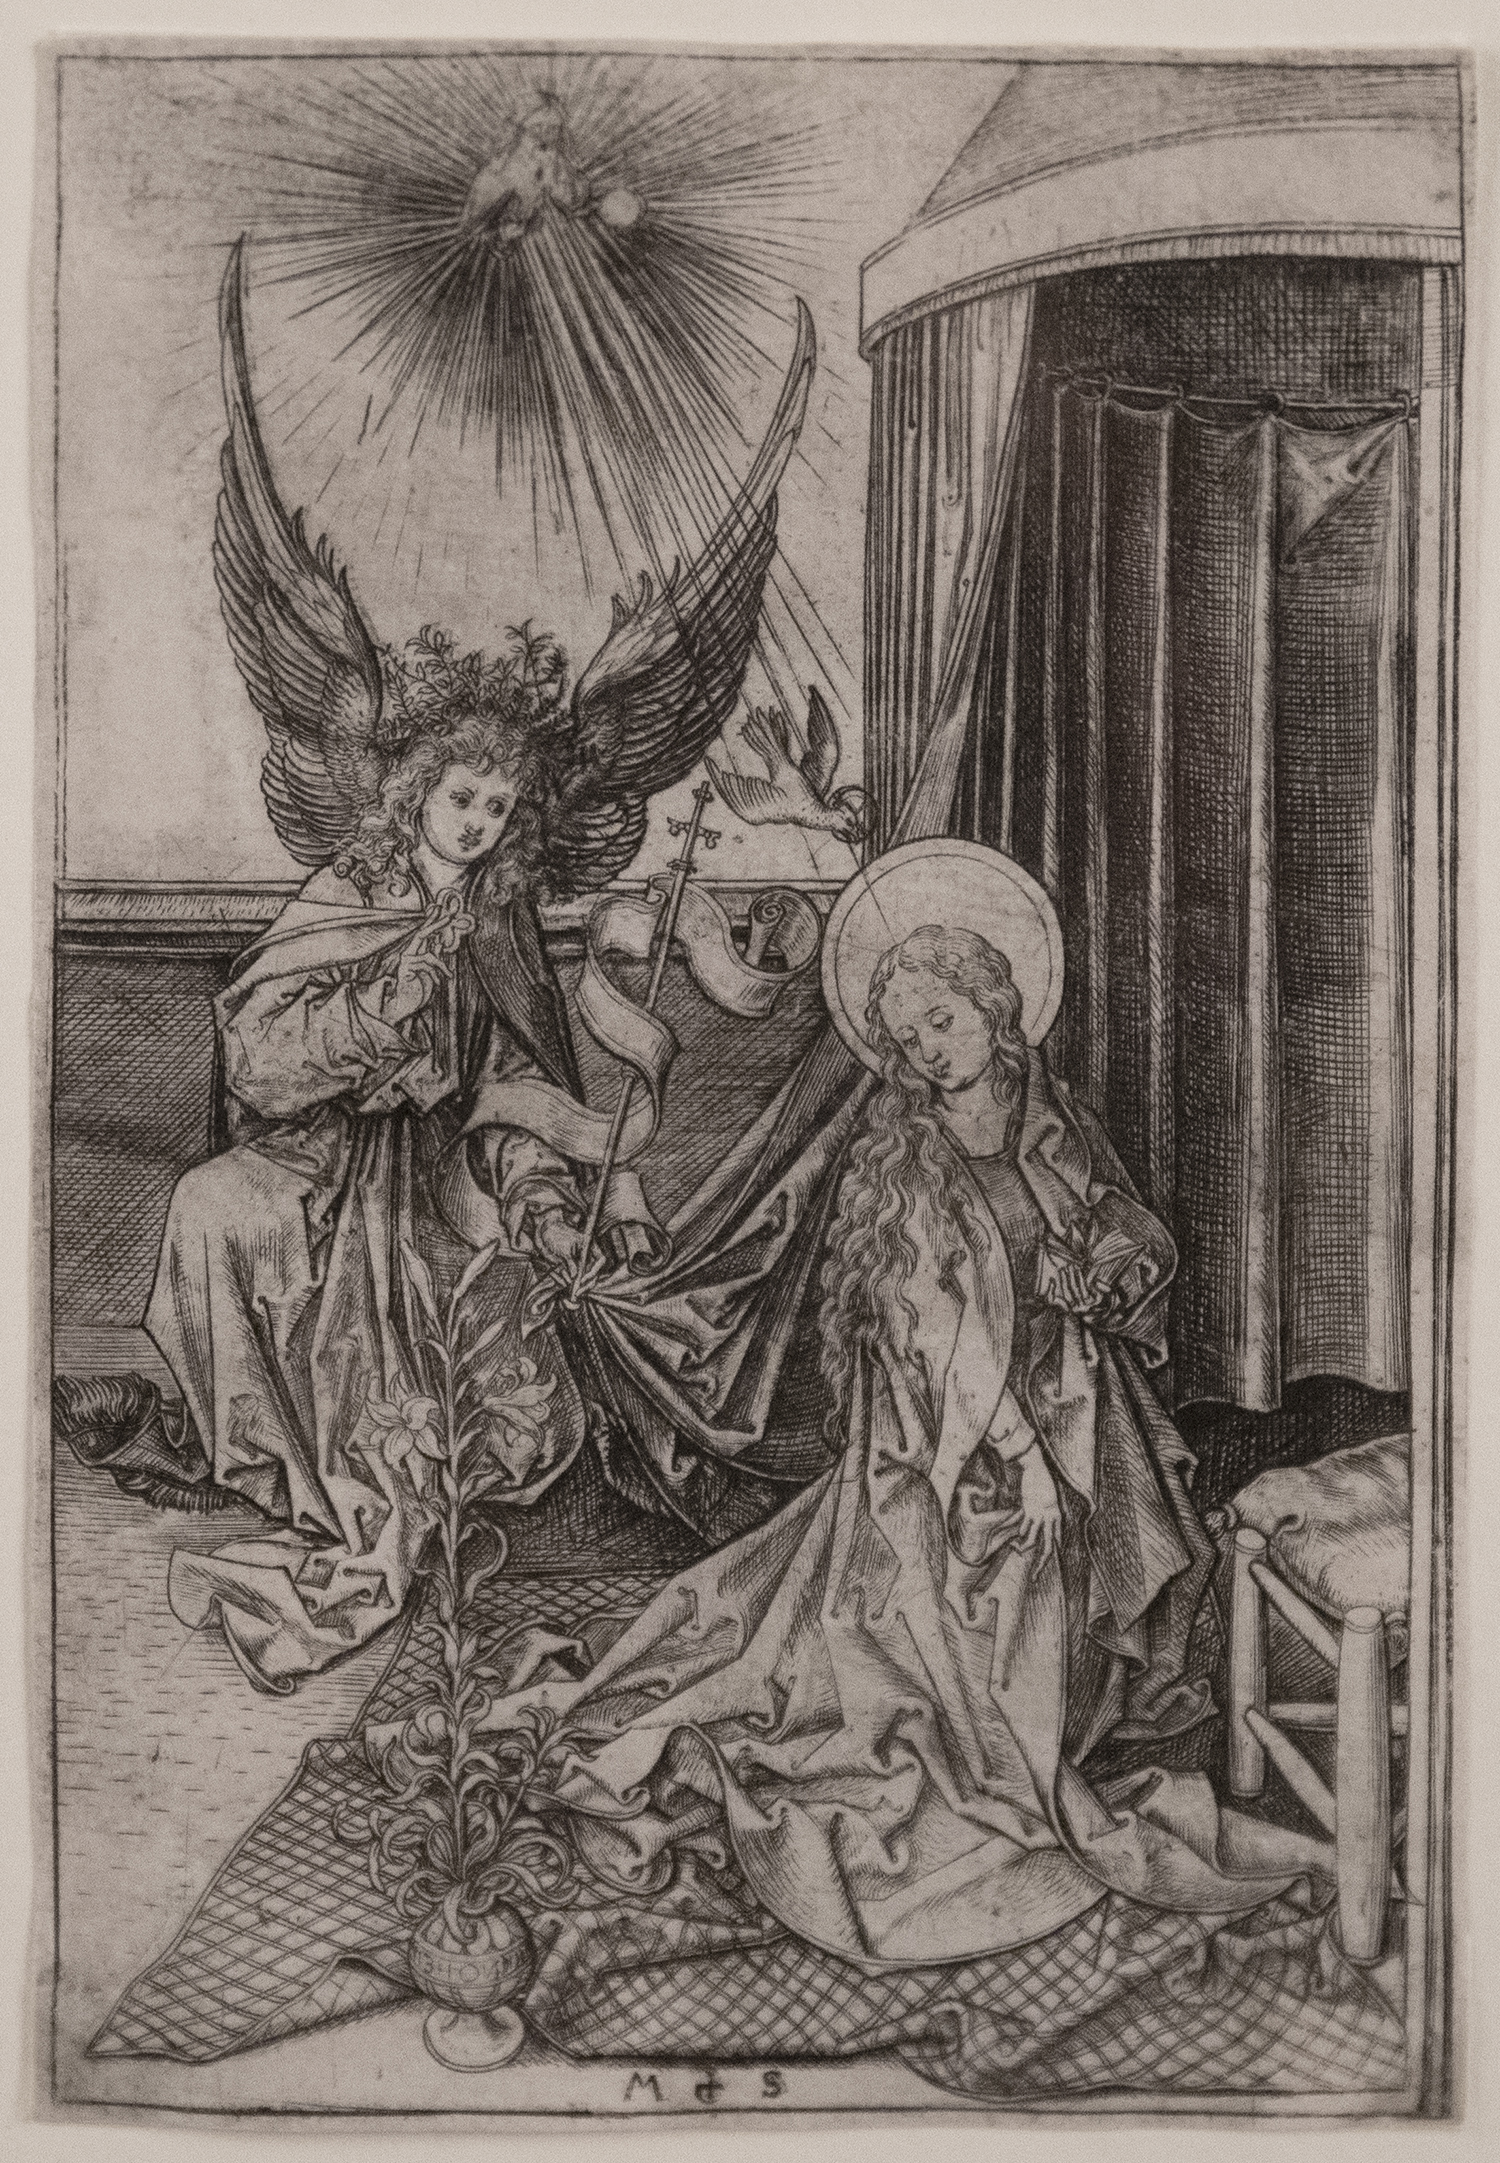 A winged angel standing and speaking to a woman sitting next to a tent.